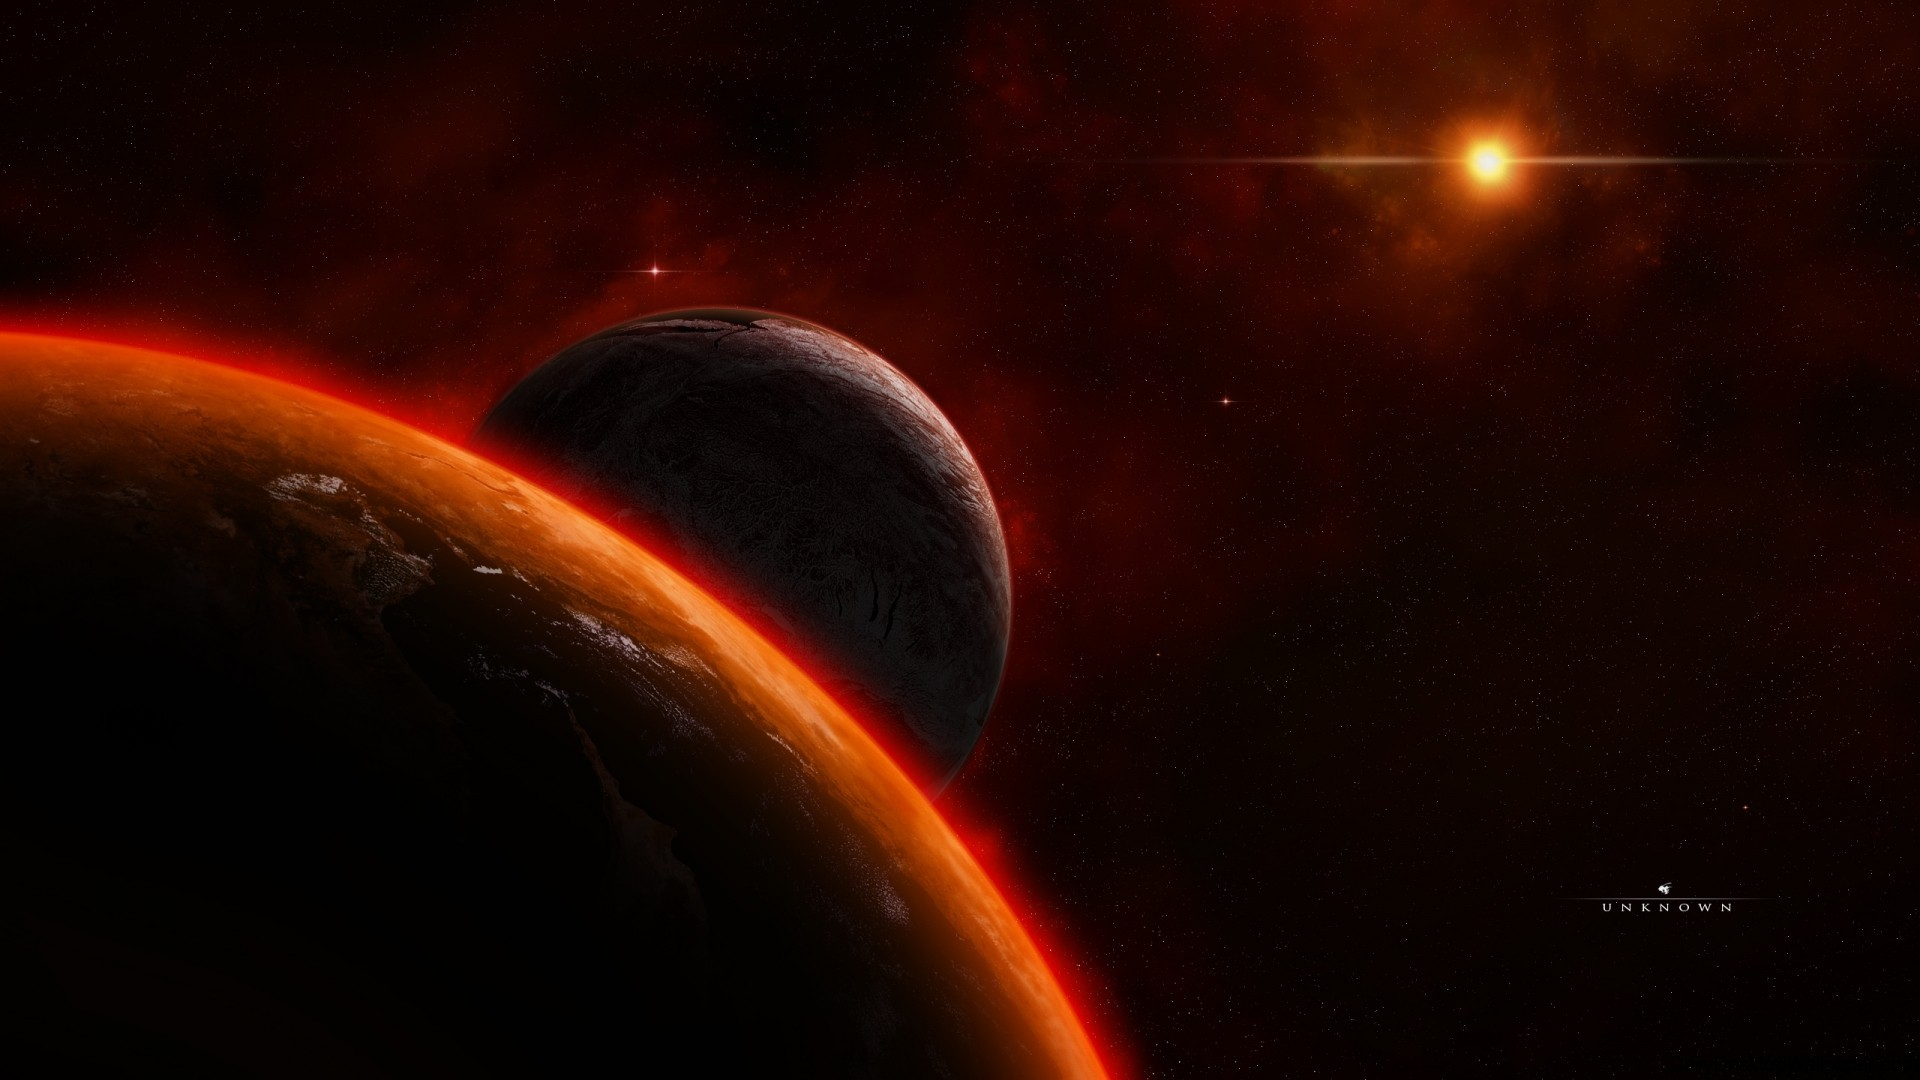 Unknown planet wallpaper